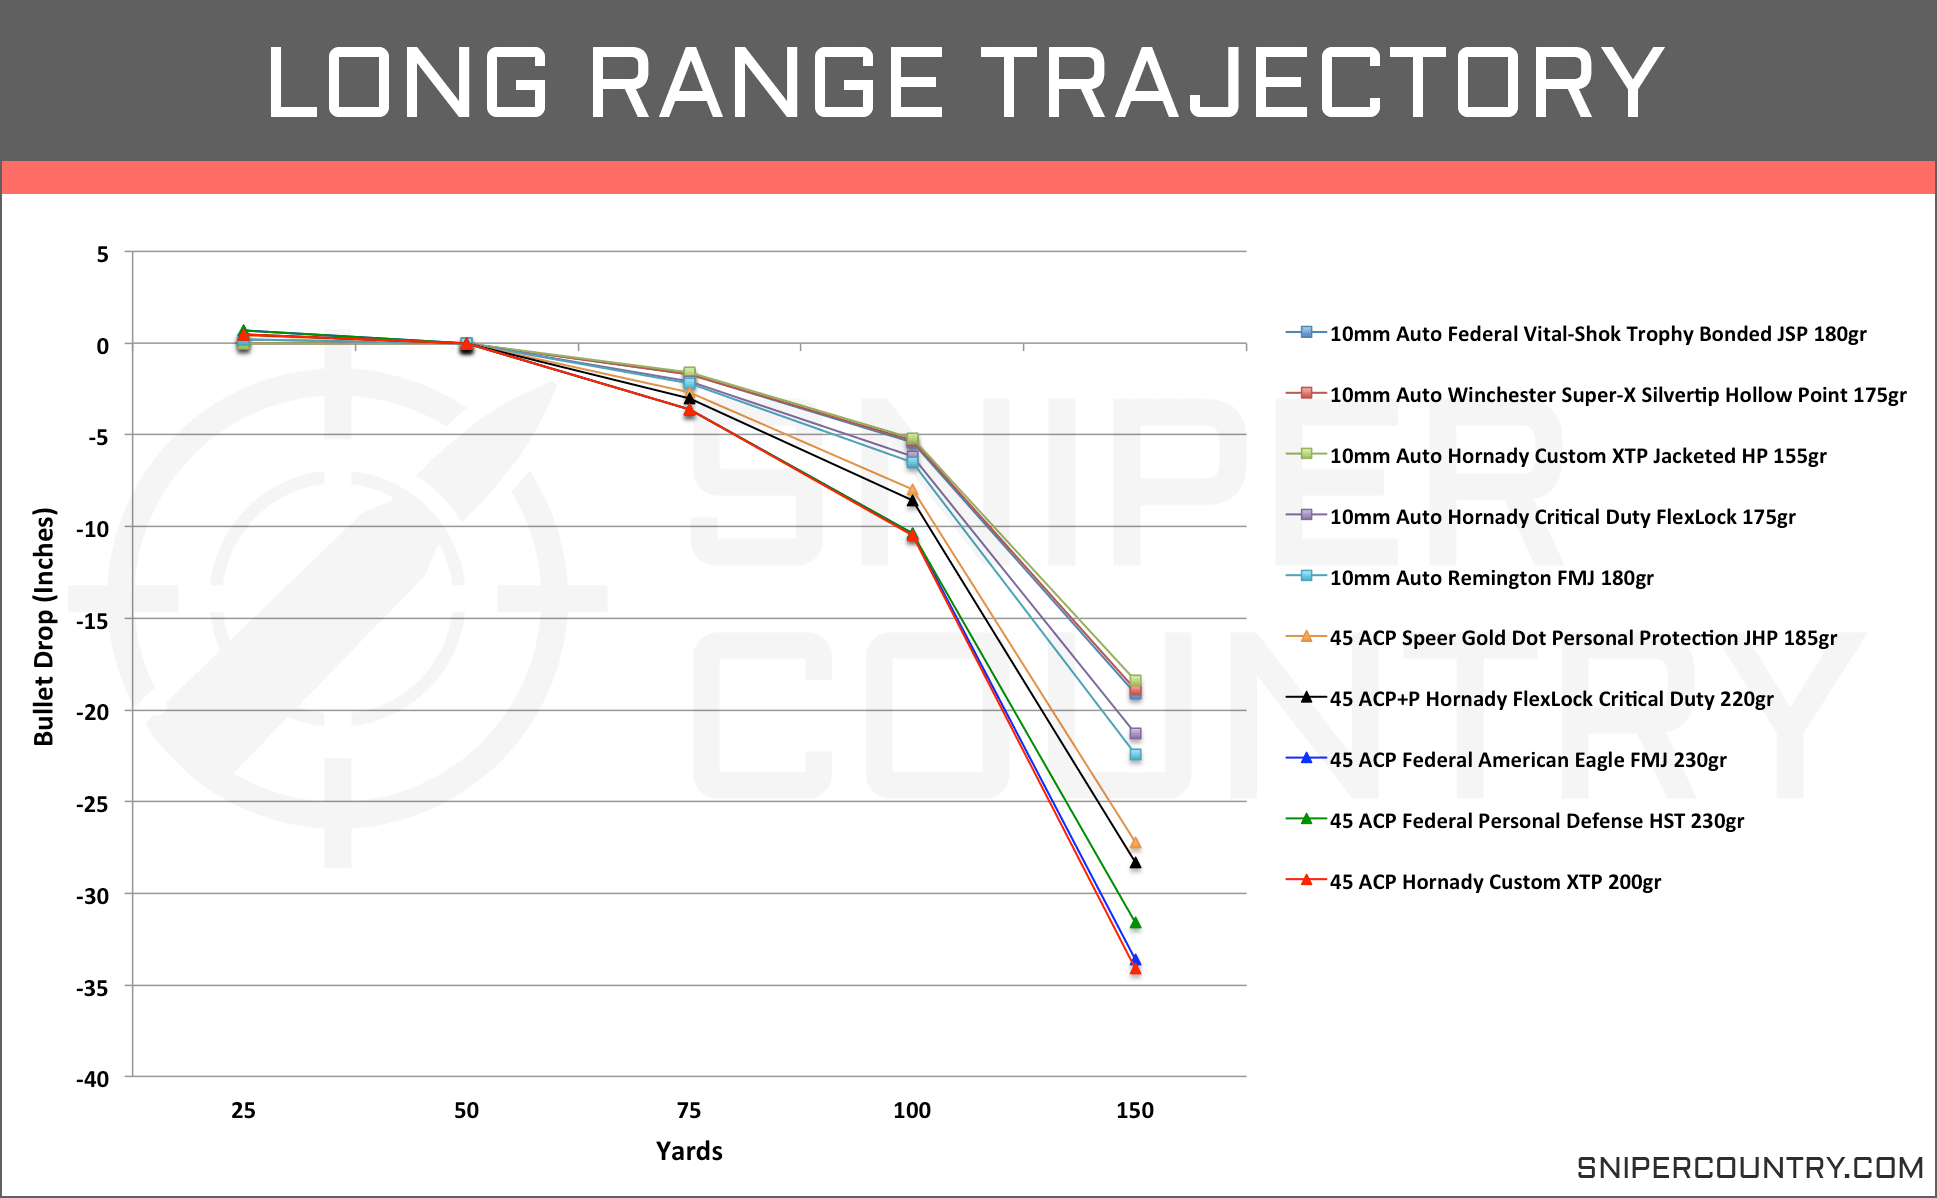 Long Range Trajectory 10mm vs .45 ACP